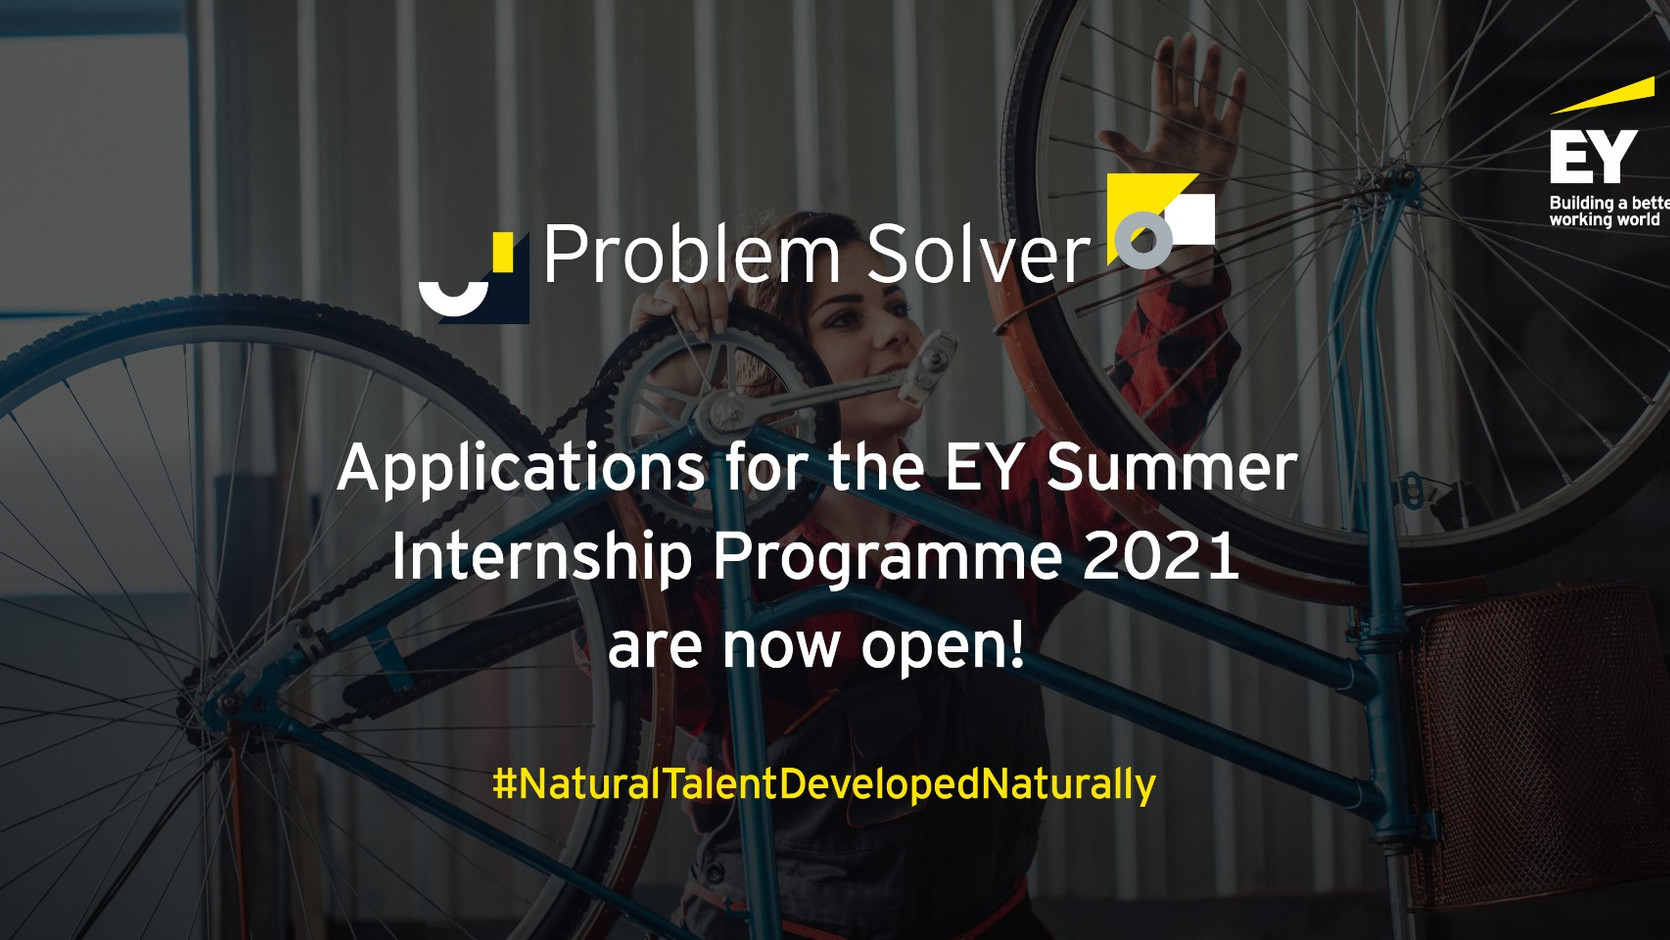 The EY Summer Internship Programme 2021